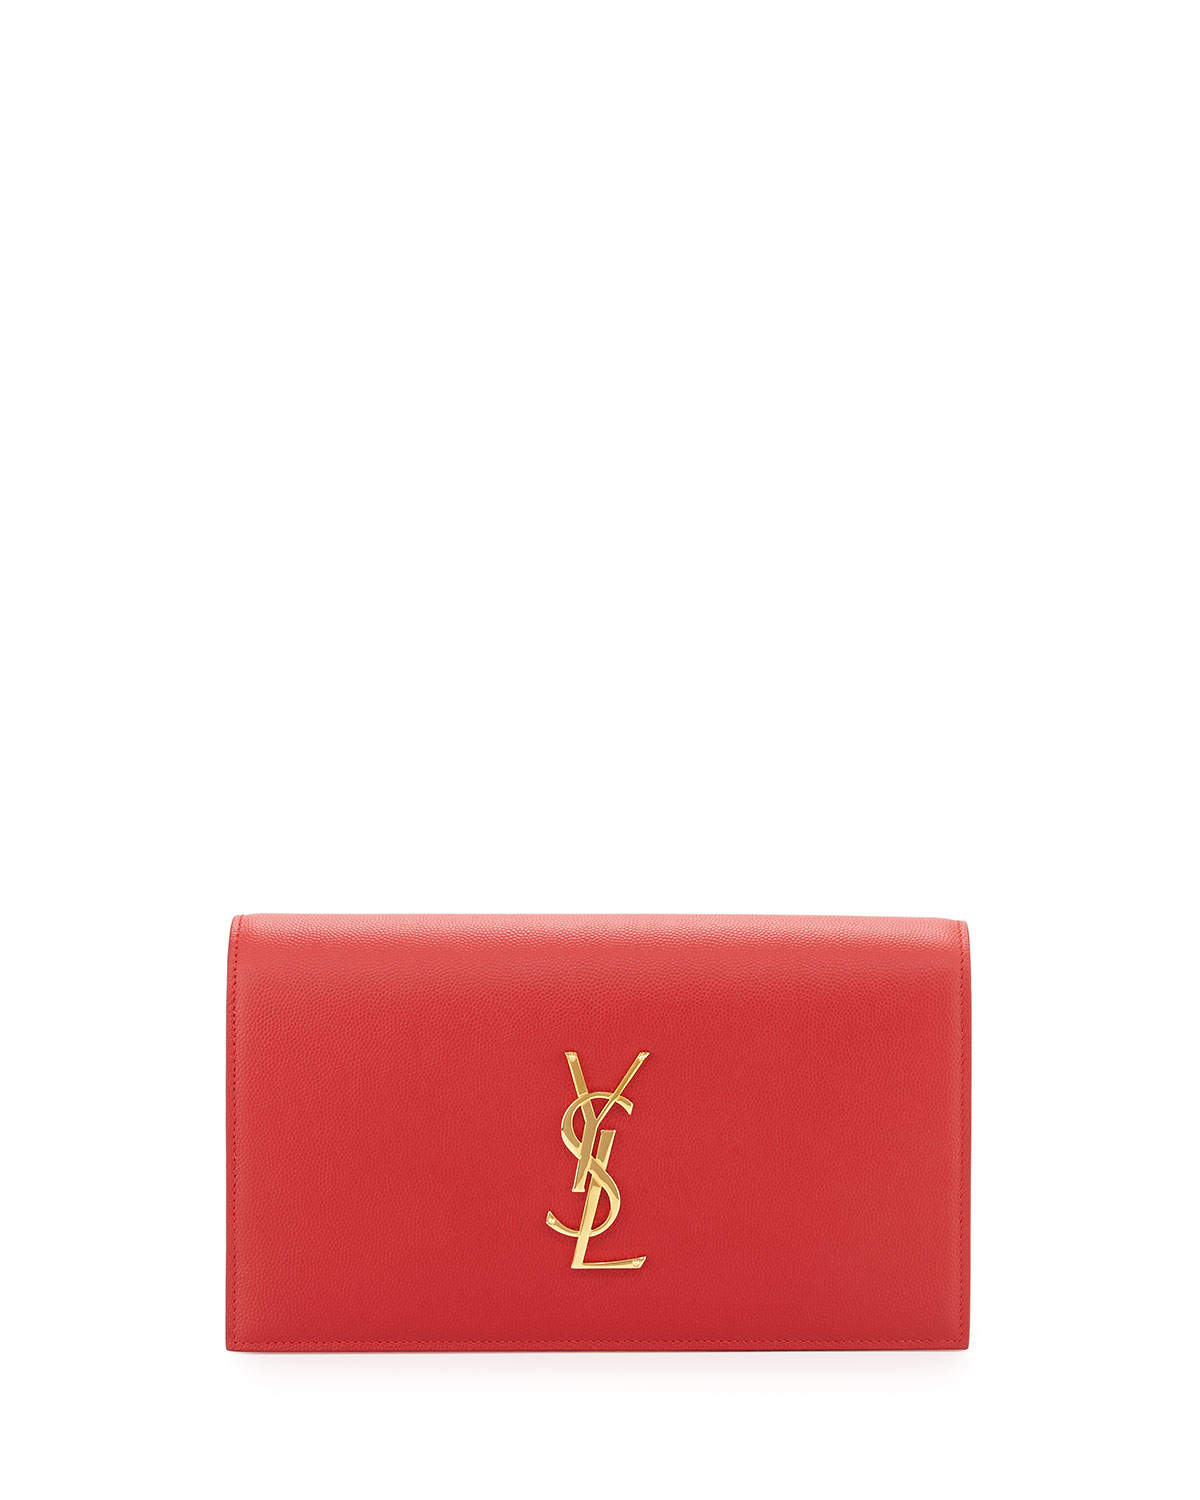 the latest attractive price hot-selling clearance Monogram YSL Leather Small Clutch Bag